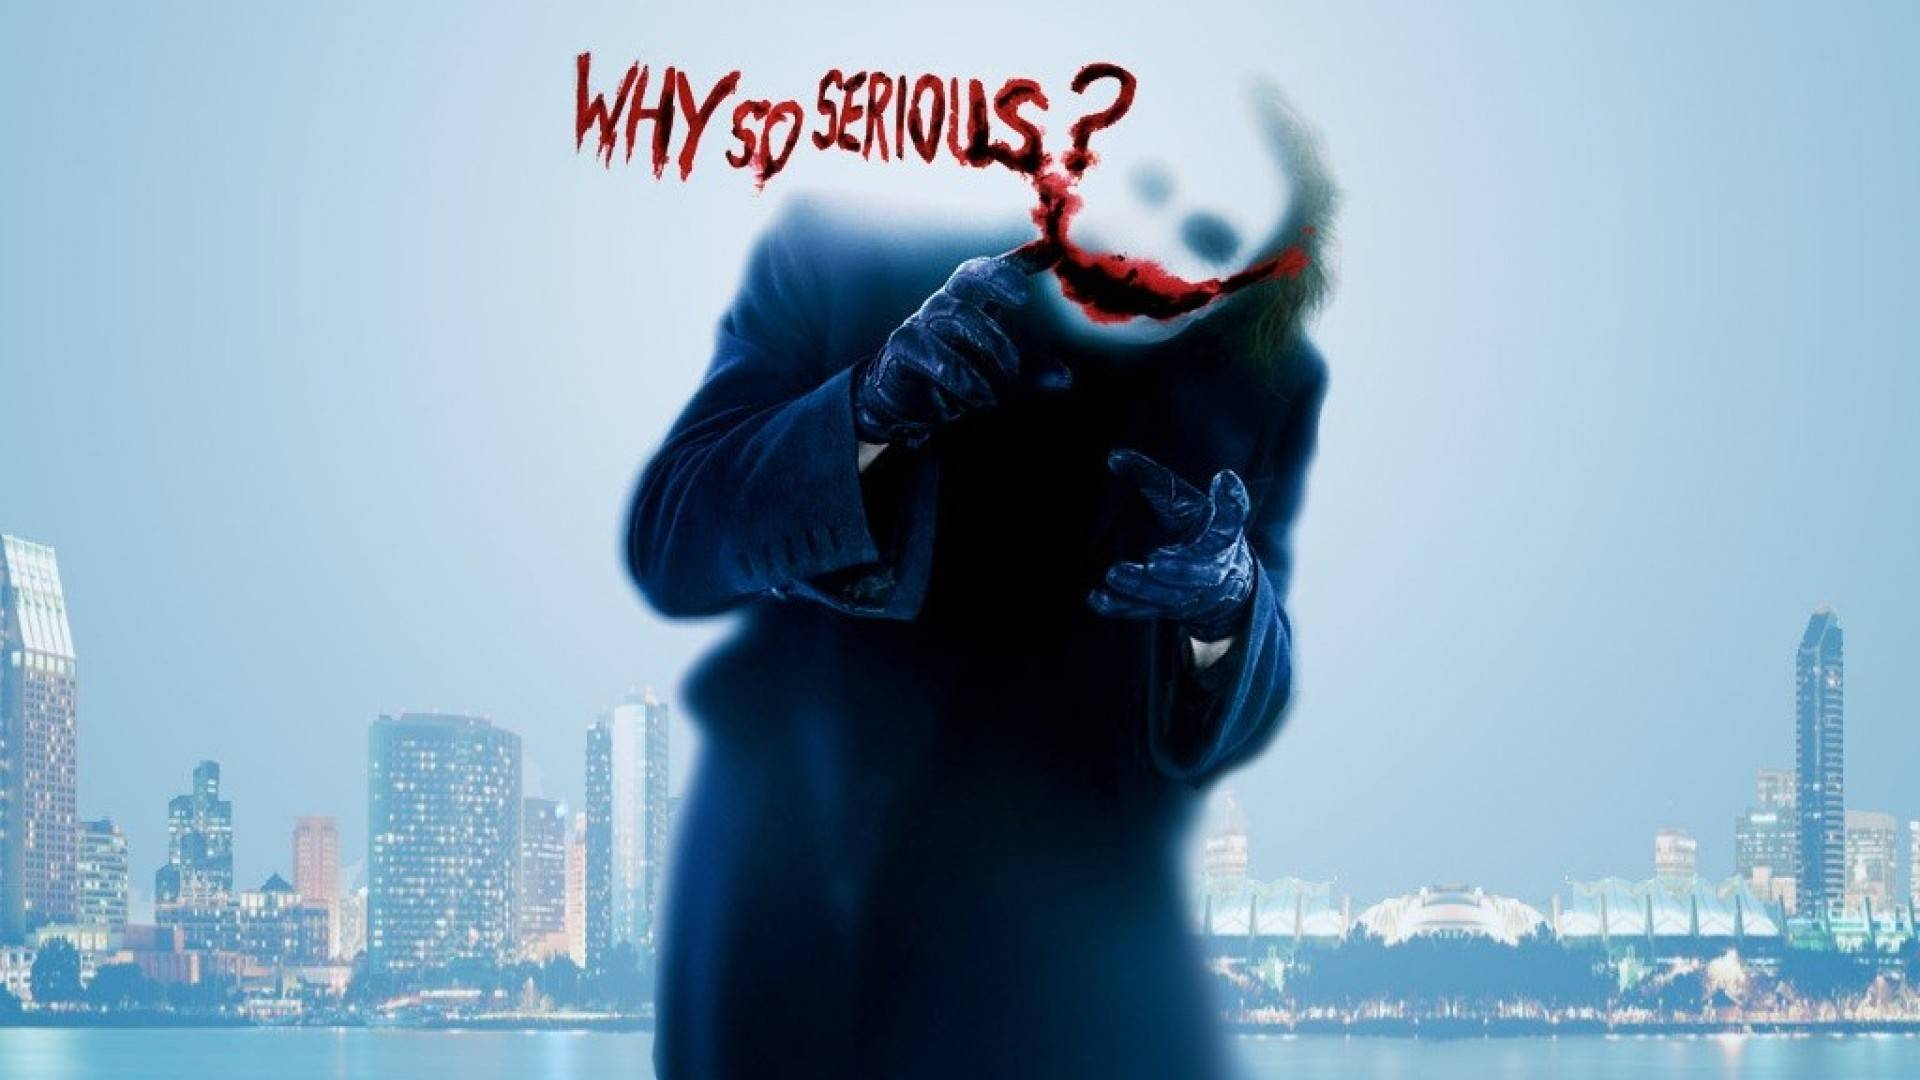 110370-joker-wallpaper-why-so-serious